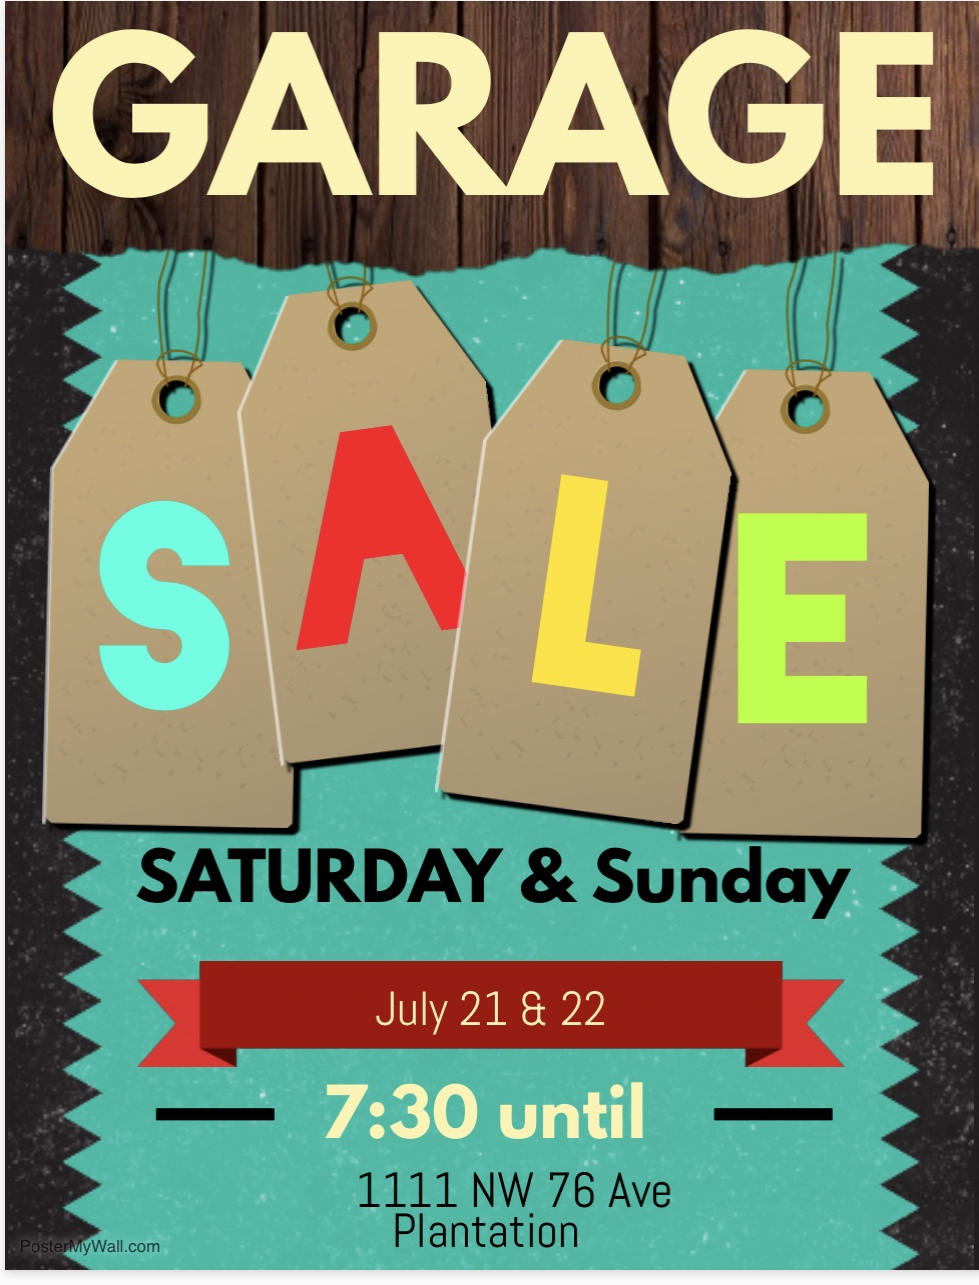 Multifamily Yard Sale Saturday & Sunday